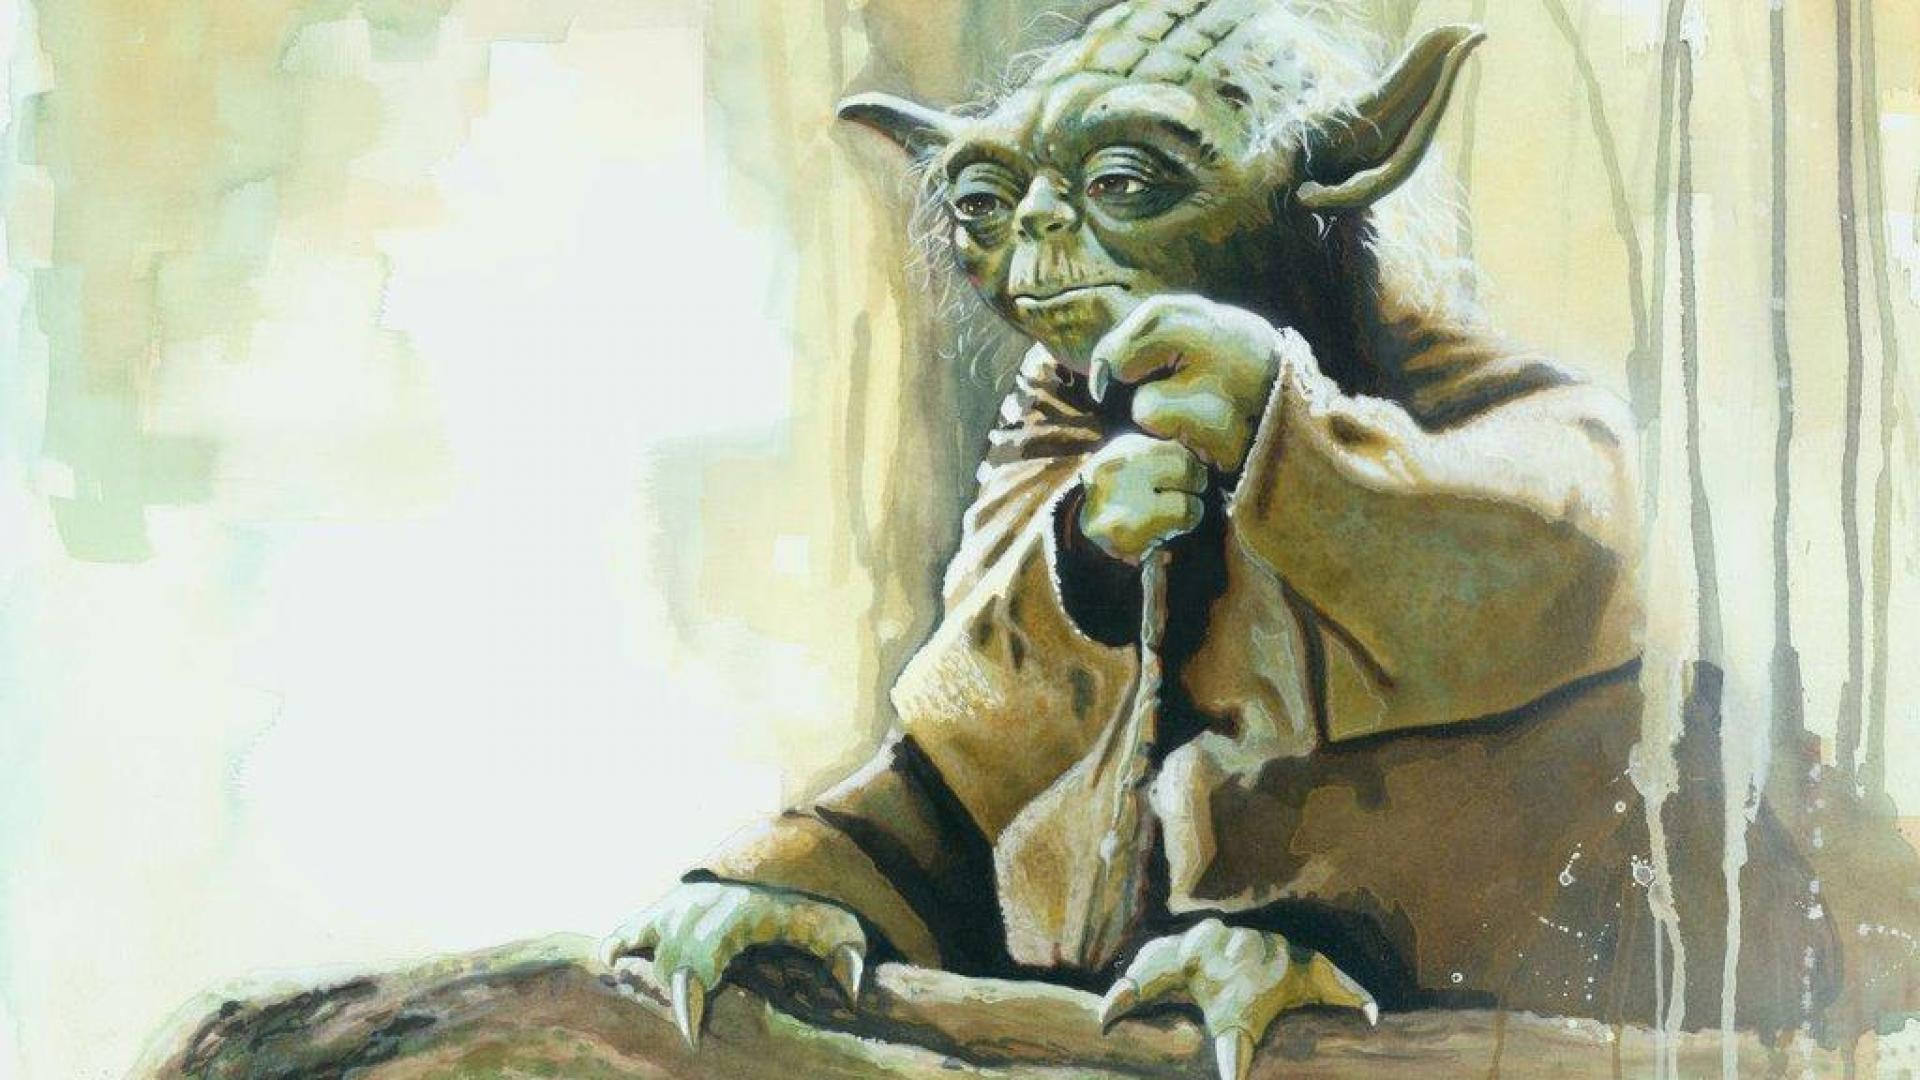 Master Yoda Wallpaper 66731 Hd Wallpapers Wallpapersinhqcom Paintings Star Wars Scenes 1920x1080 Download Hd Wallpaper Wallpapertip